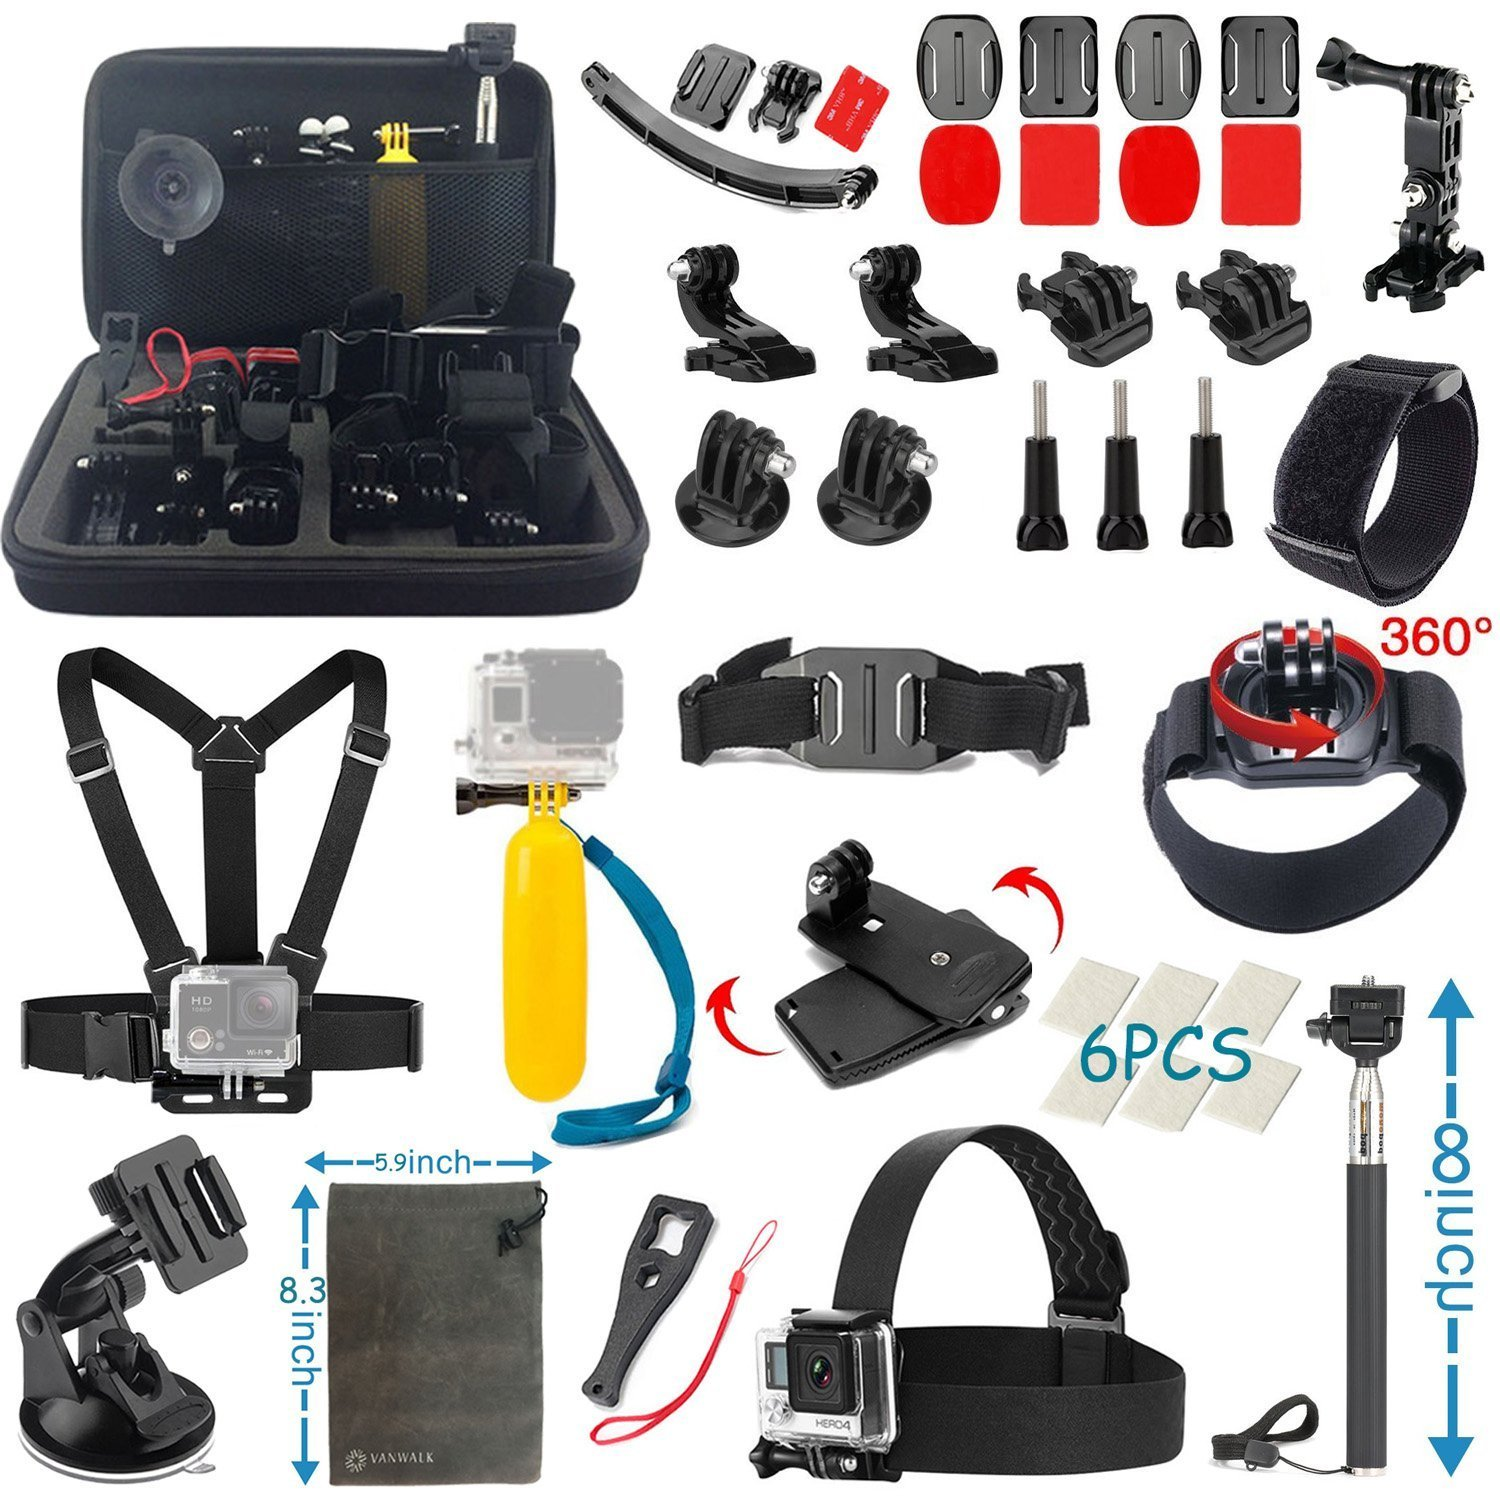 22 in 1 Essentials Accessories Kit for Gopro Hero 4 3 3 2 1 Camera Chest